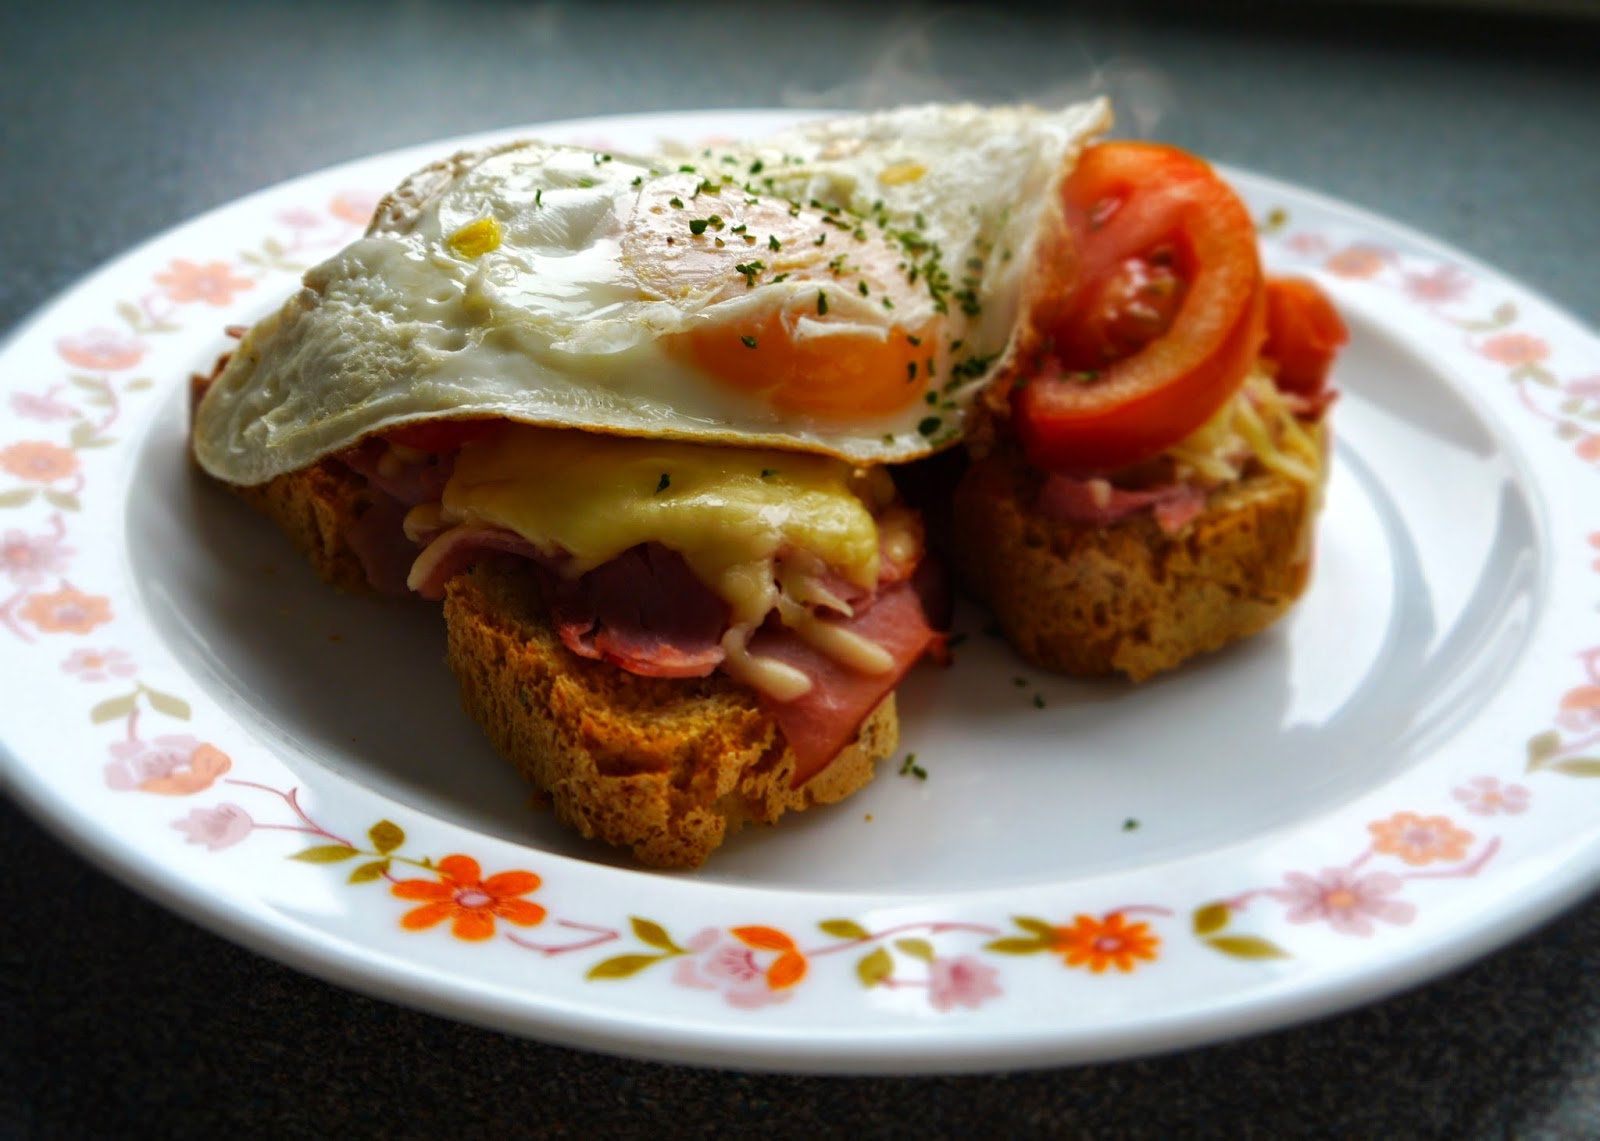 Breakfast on home baked bread